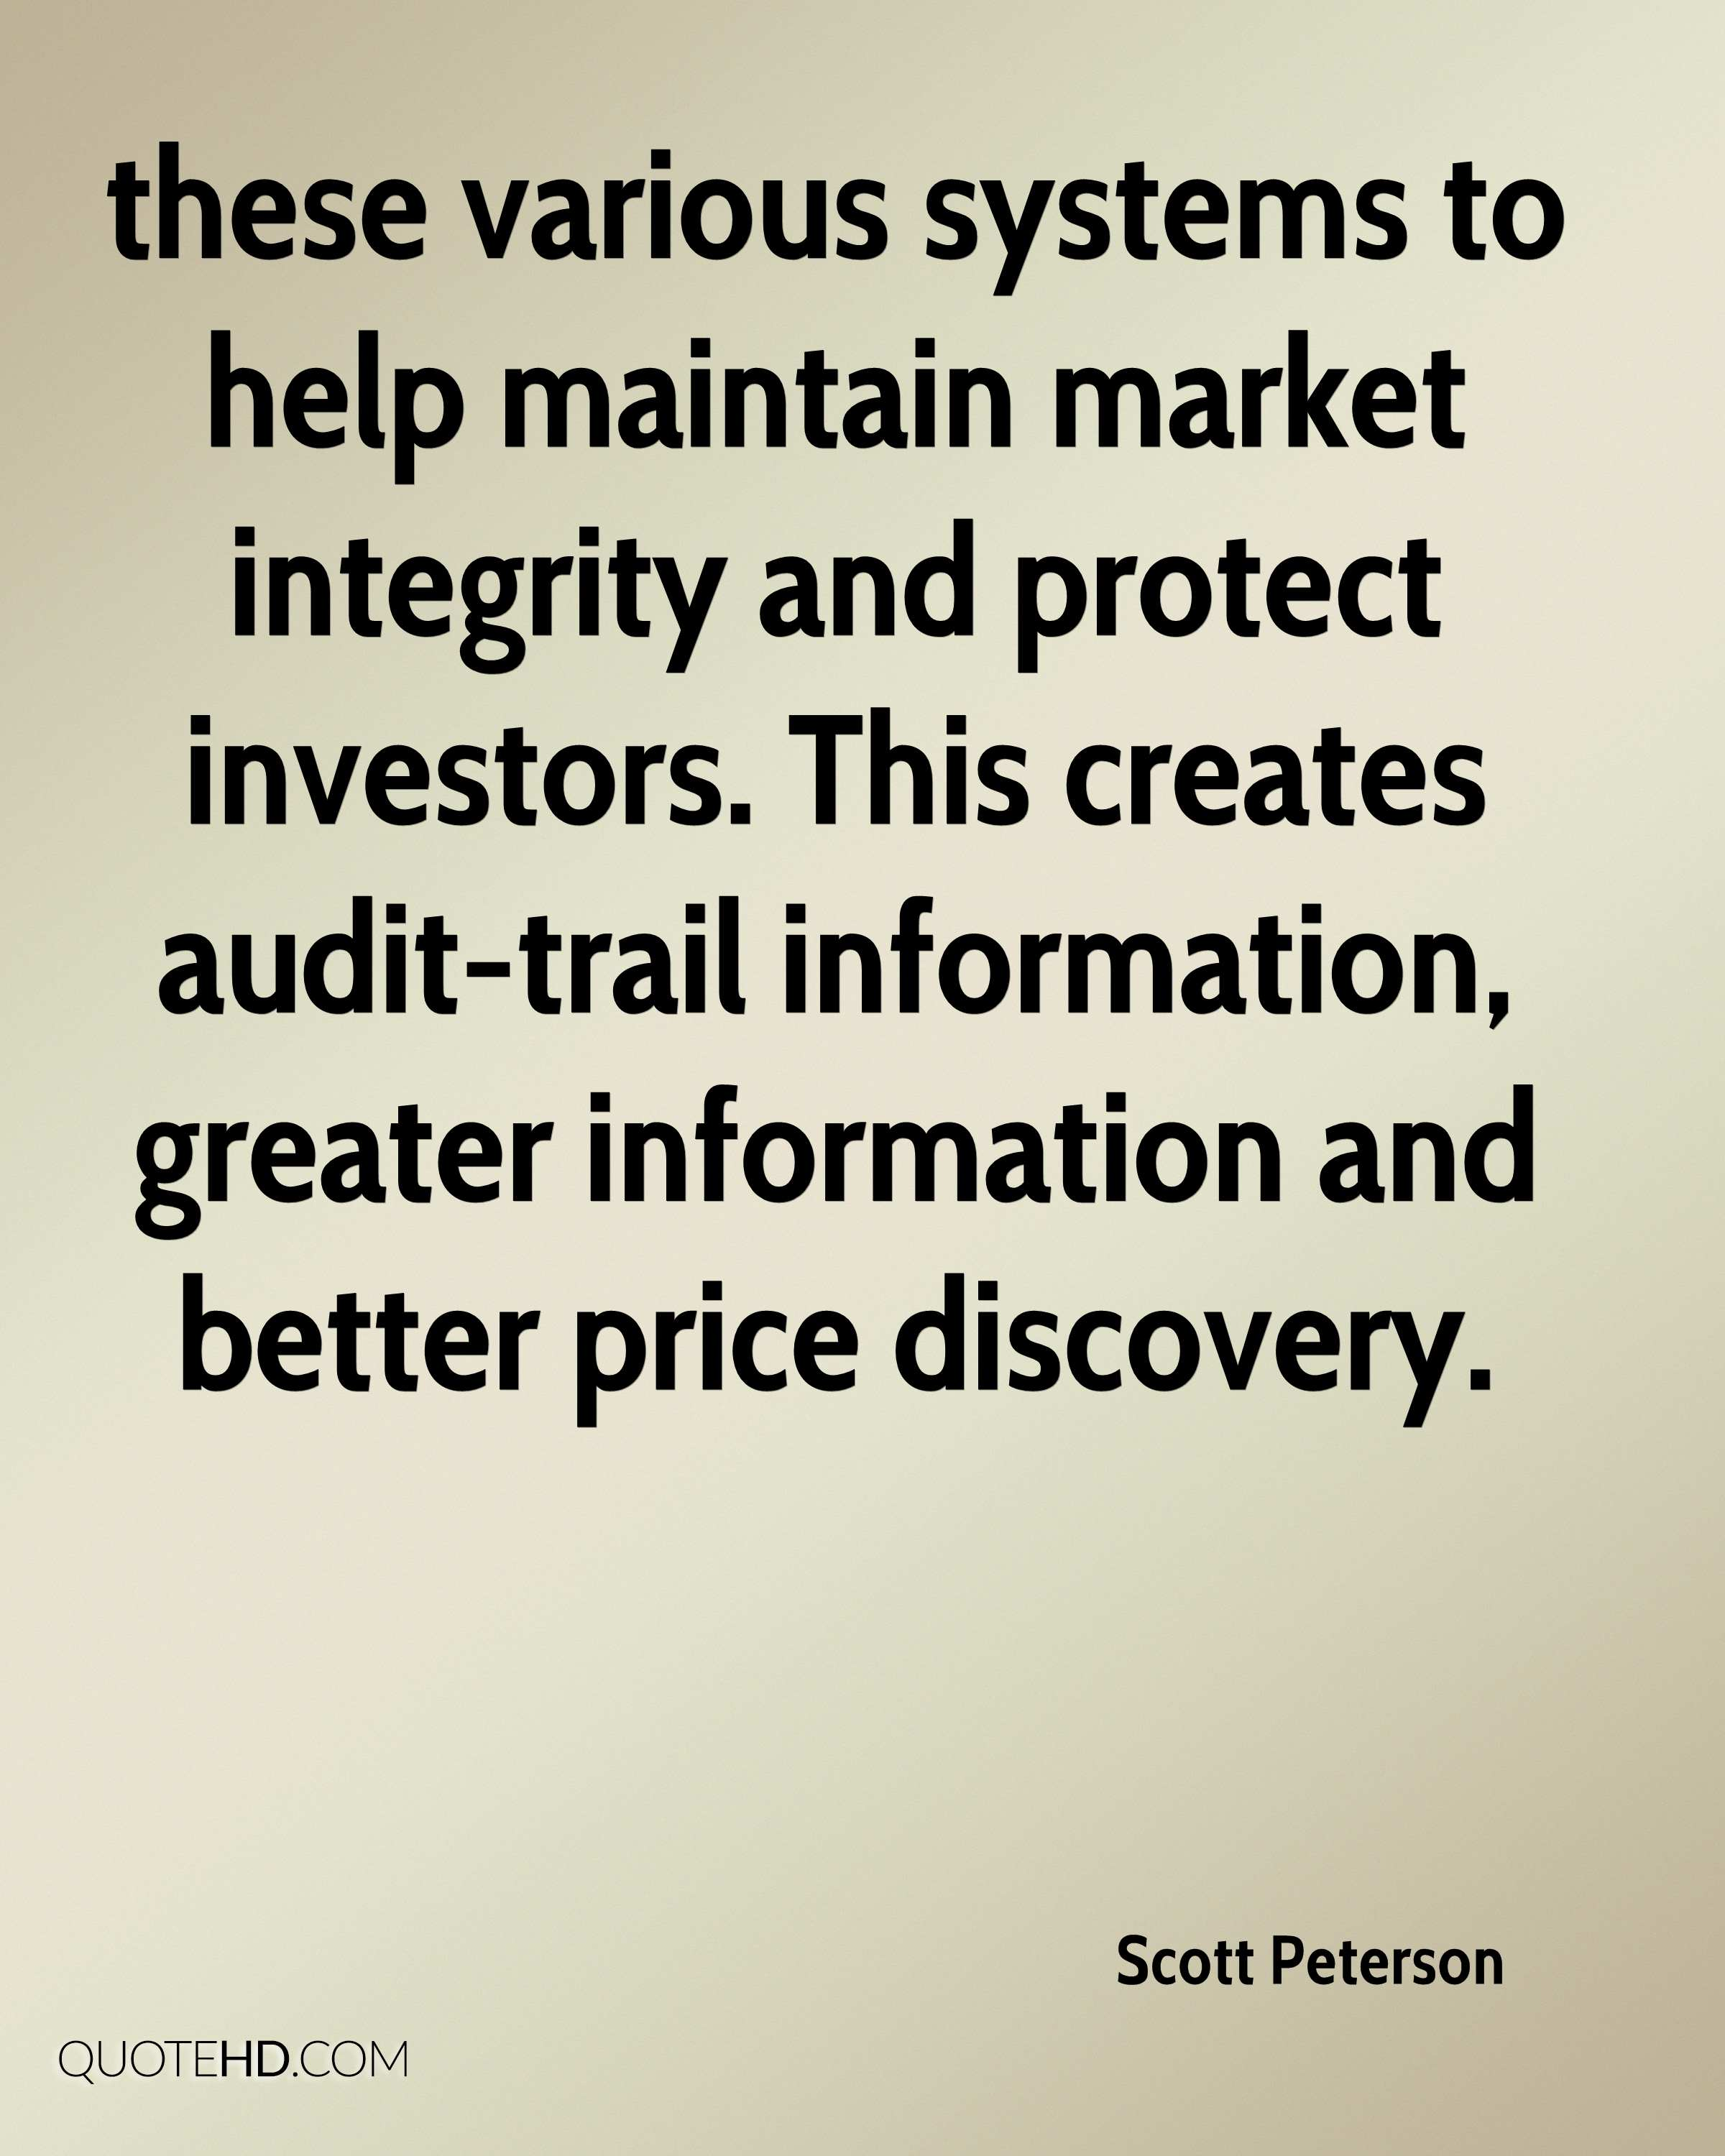 these various systems to help maintain market integrity and protect investors. This creates audit-trail information, greater information and better price discovery.